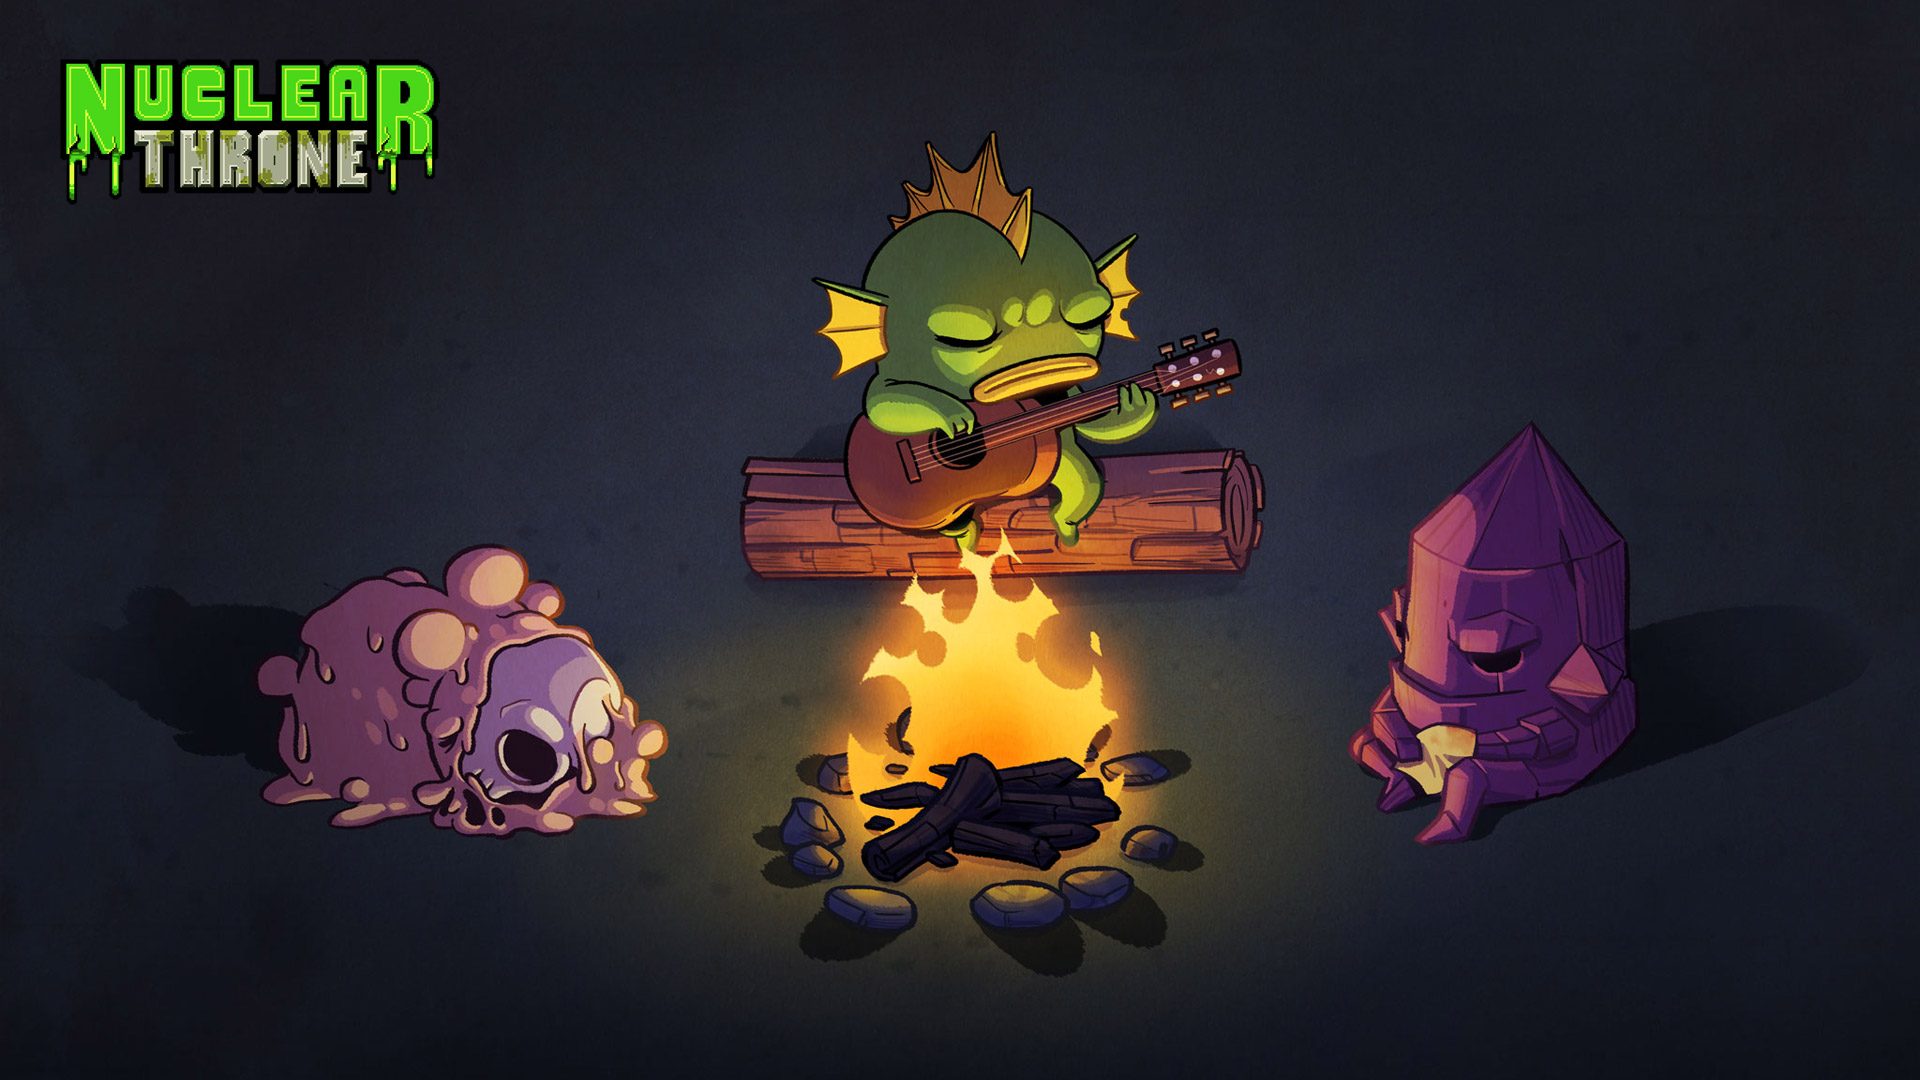 Free Nuclear Throne Wallpaper in 1920x1080